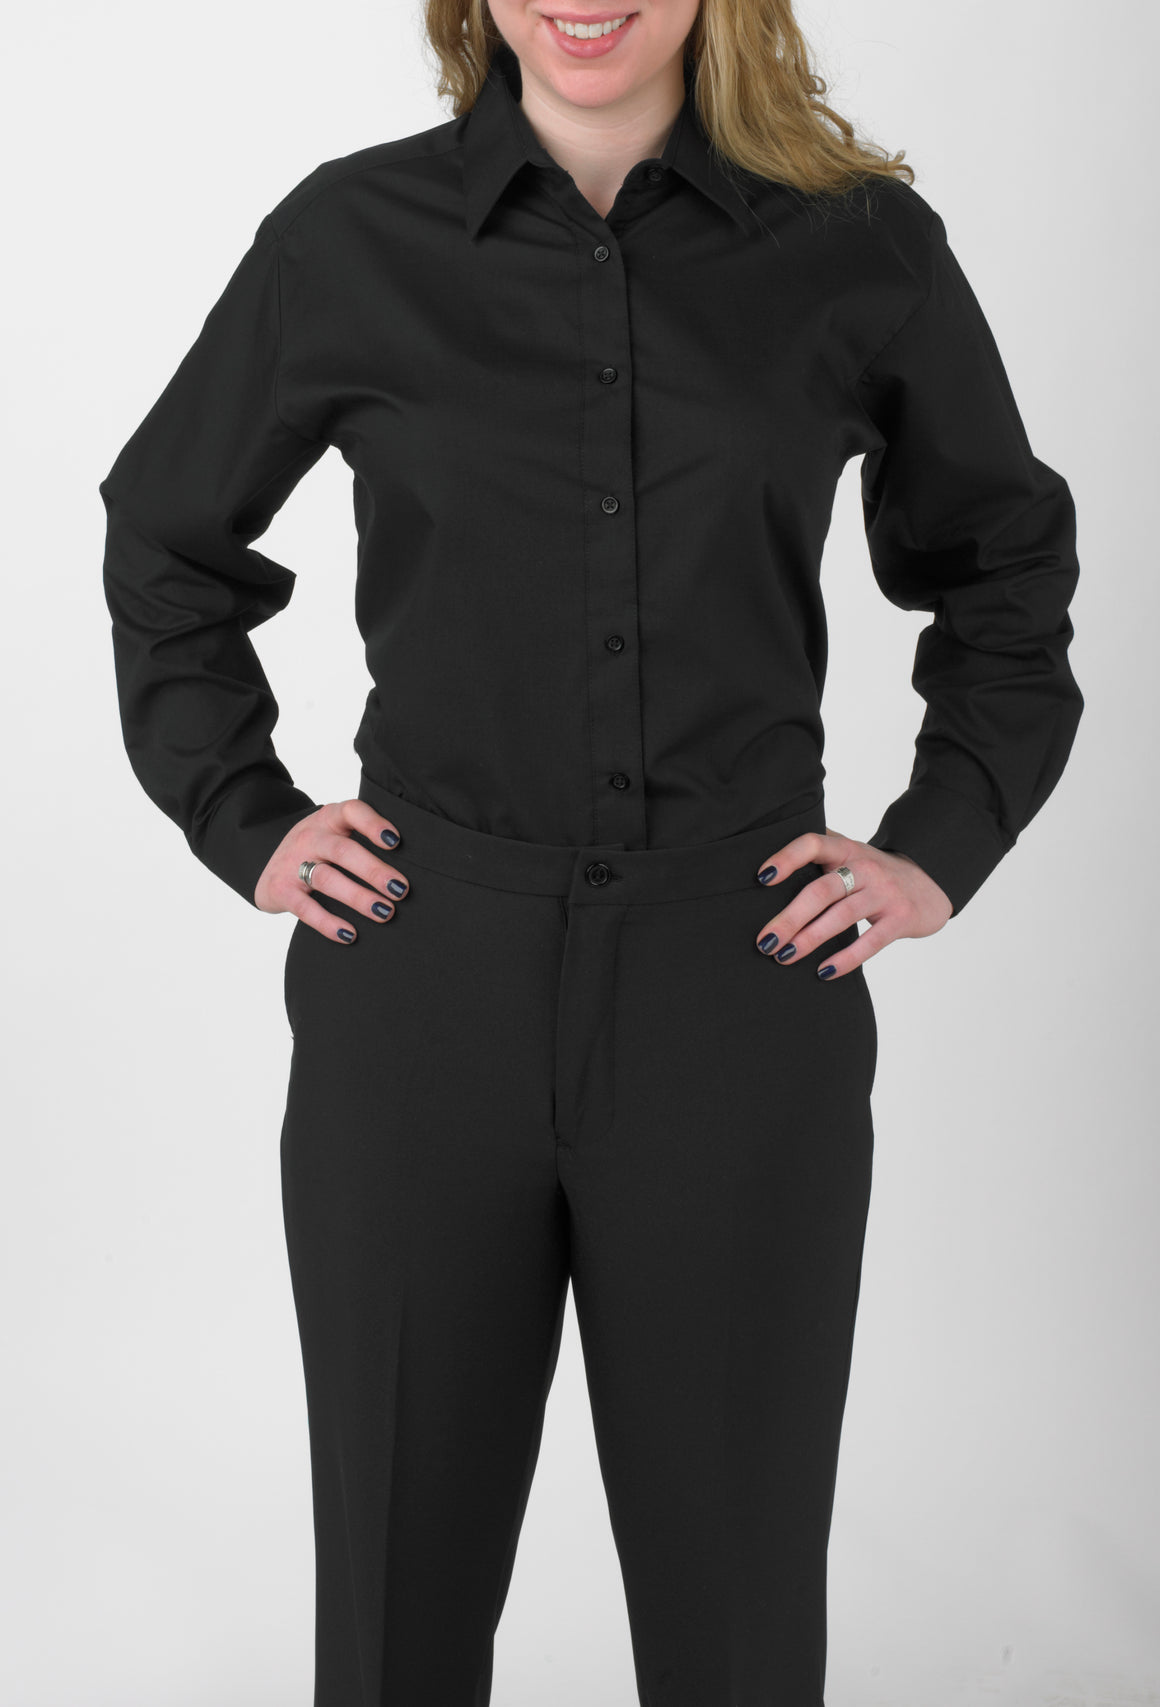 Women's Black, Lay Down Collar, Long Sleeve Dress Shirt